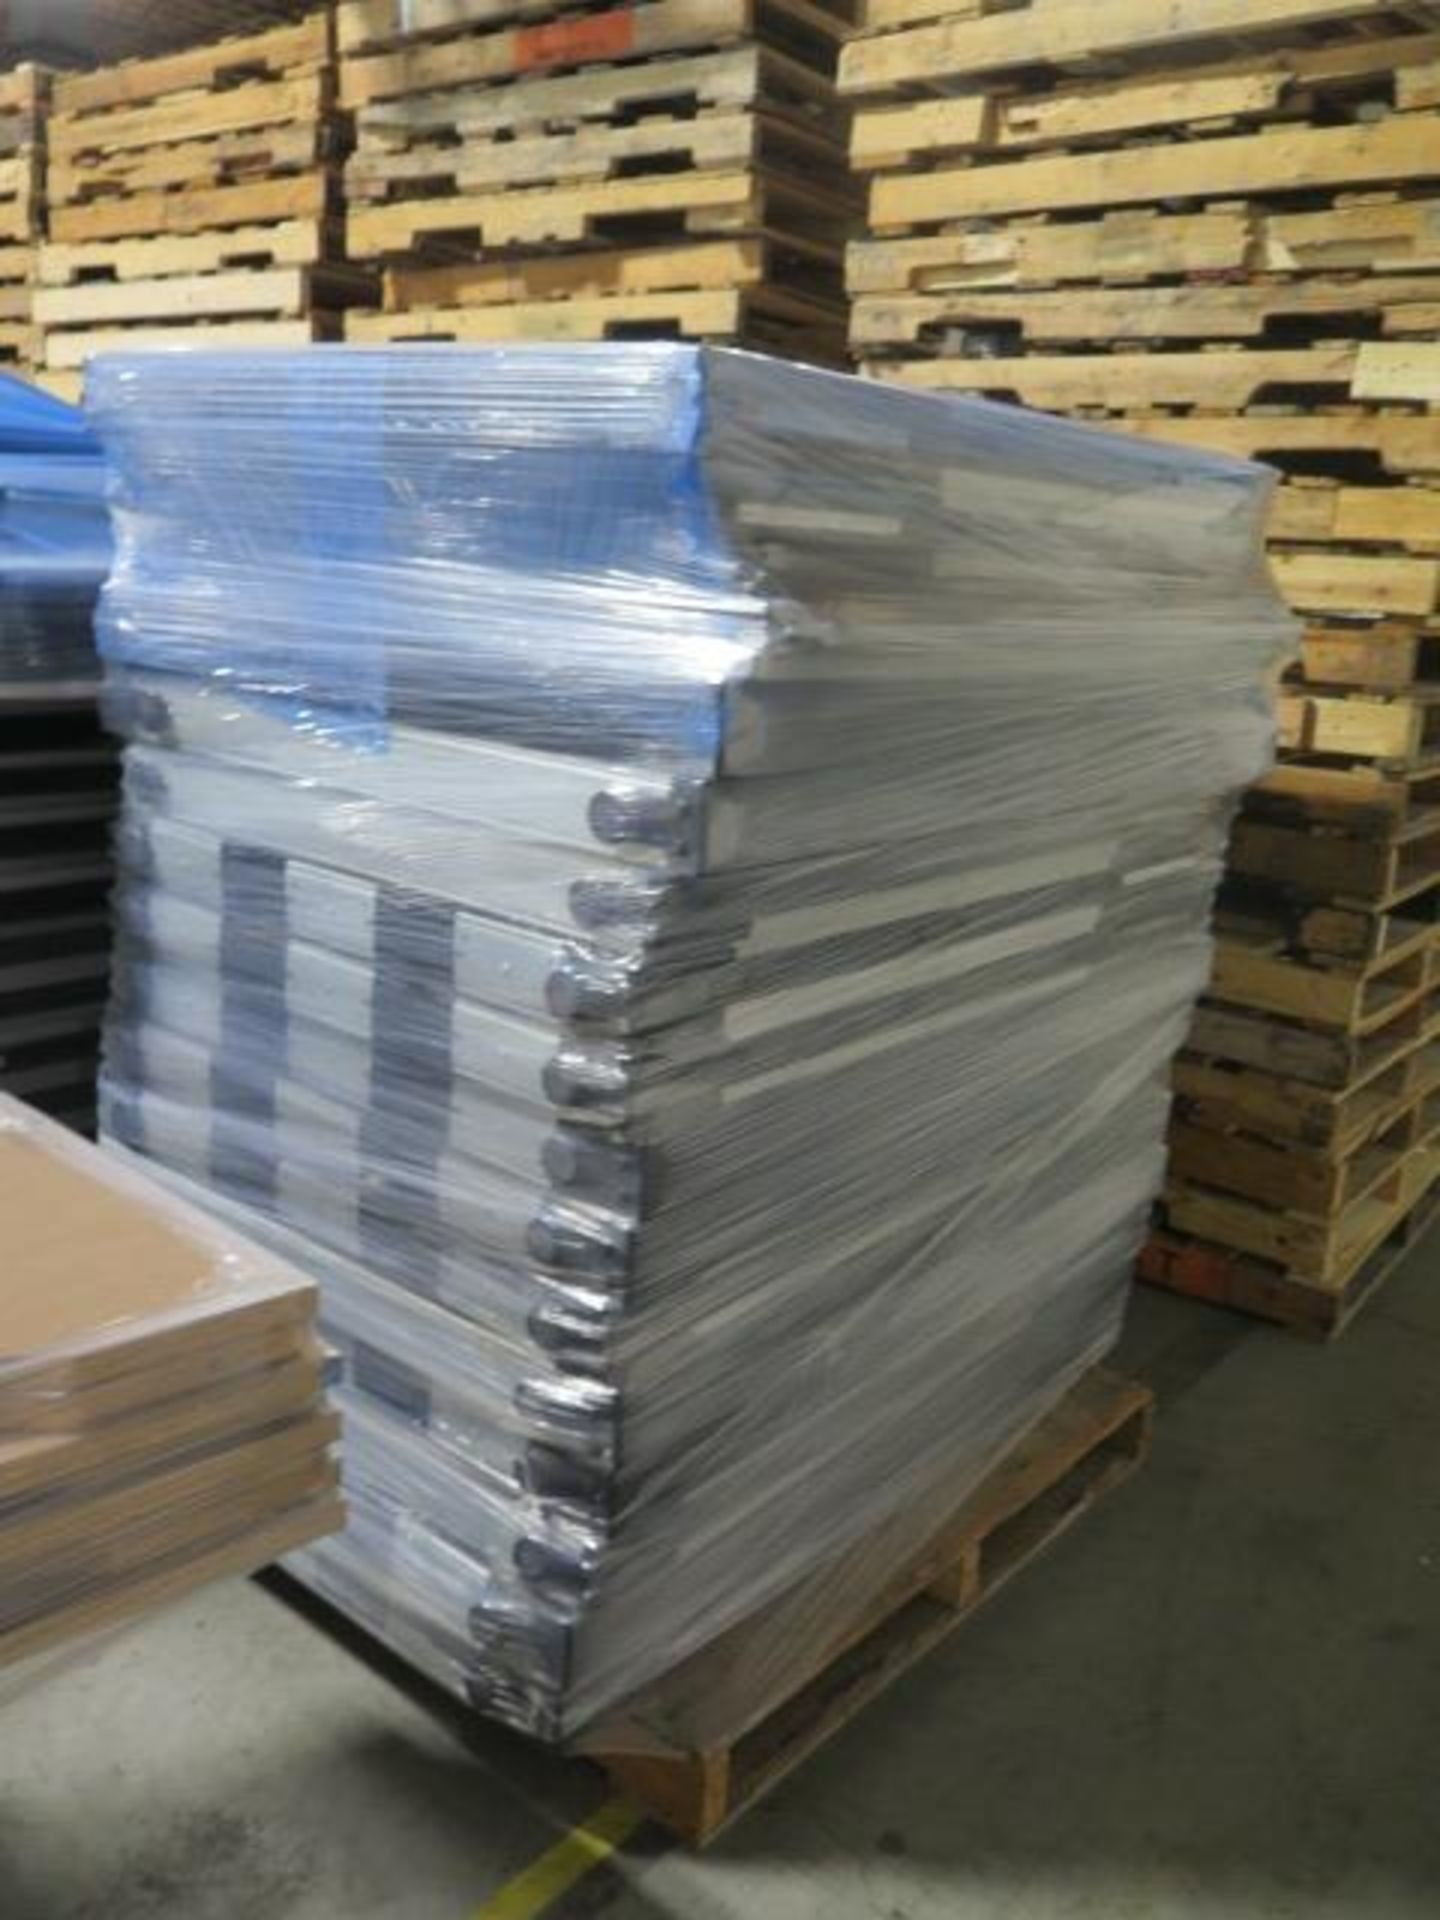 Large Quantity of Office Partitions, Desks, File Cabinets and Storage Cabinets (SOLD AS-IS - NO WARA - Image 10 of 24